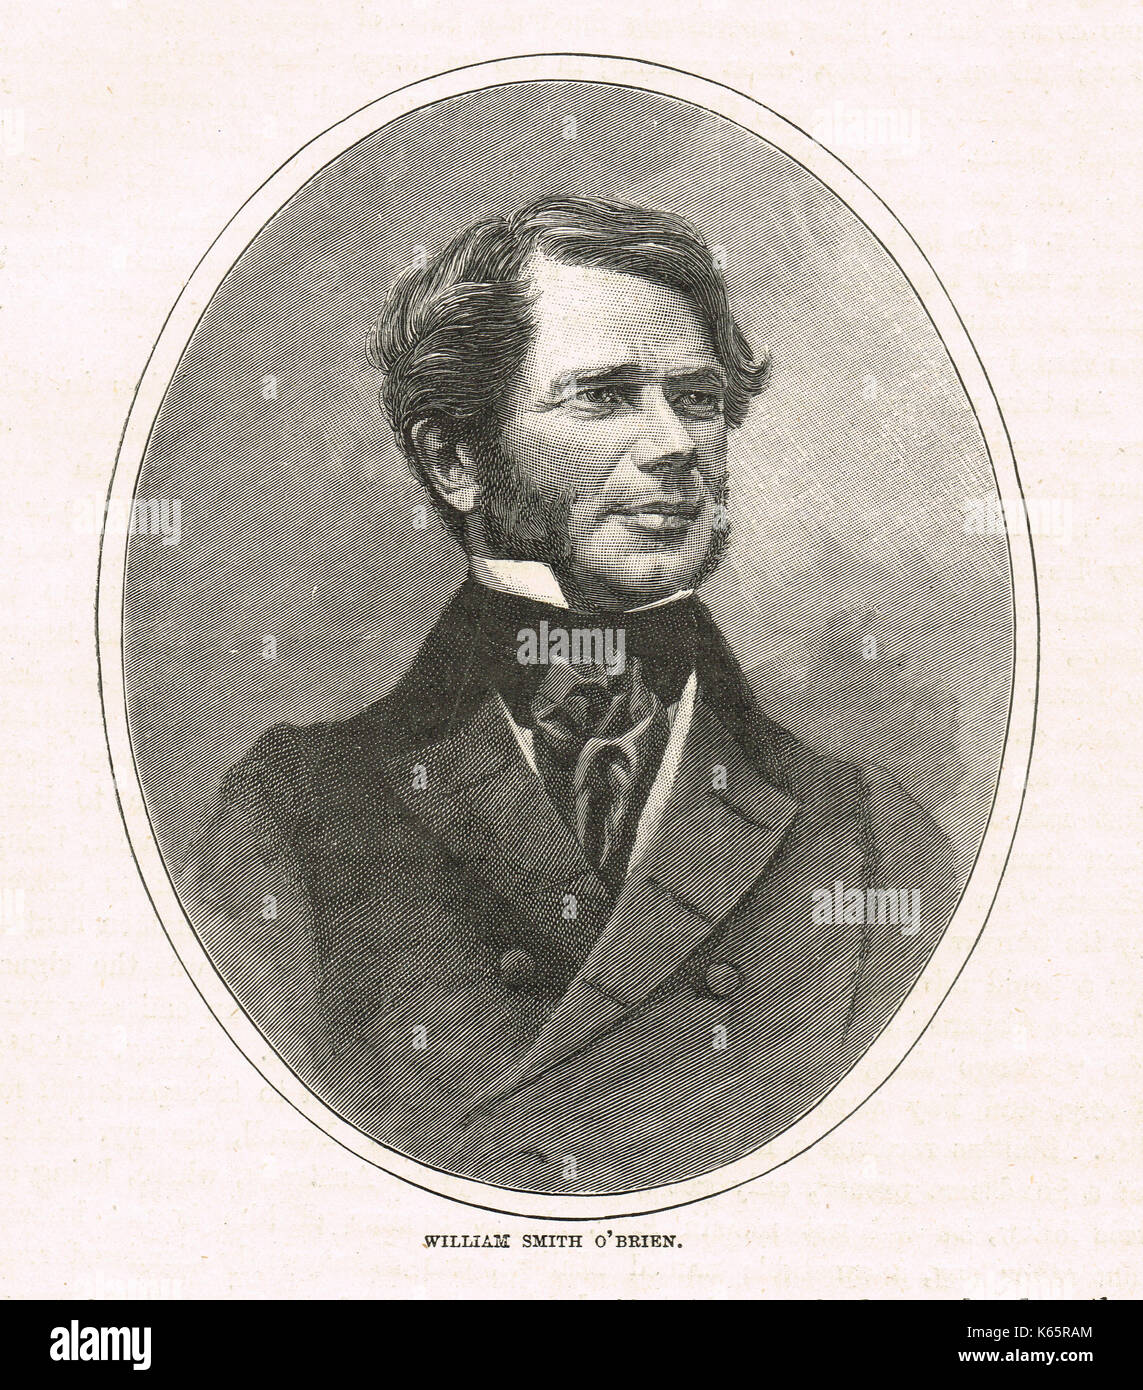 William Smith O'Brien, Irish nationalist Member of Parliament, and leader of the Young Ireland movement - Stock Image